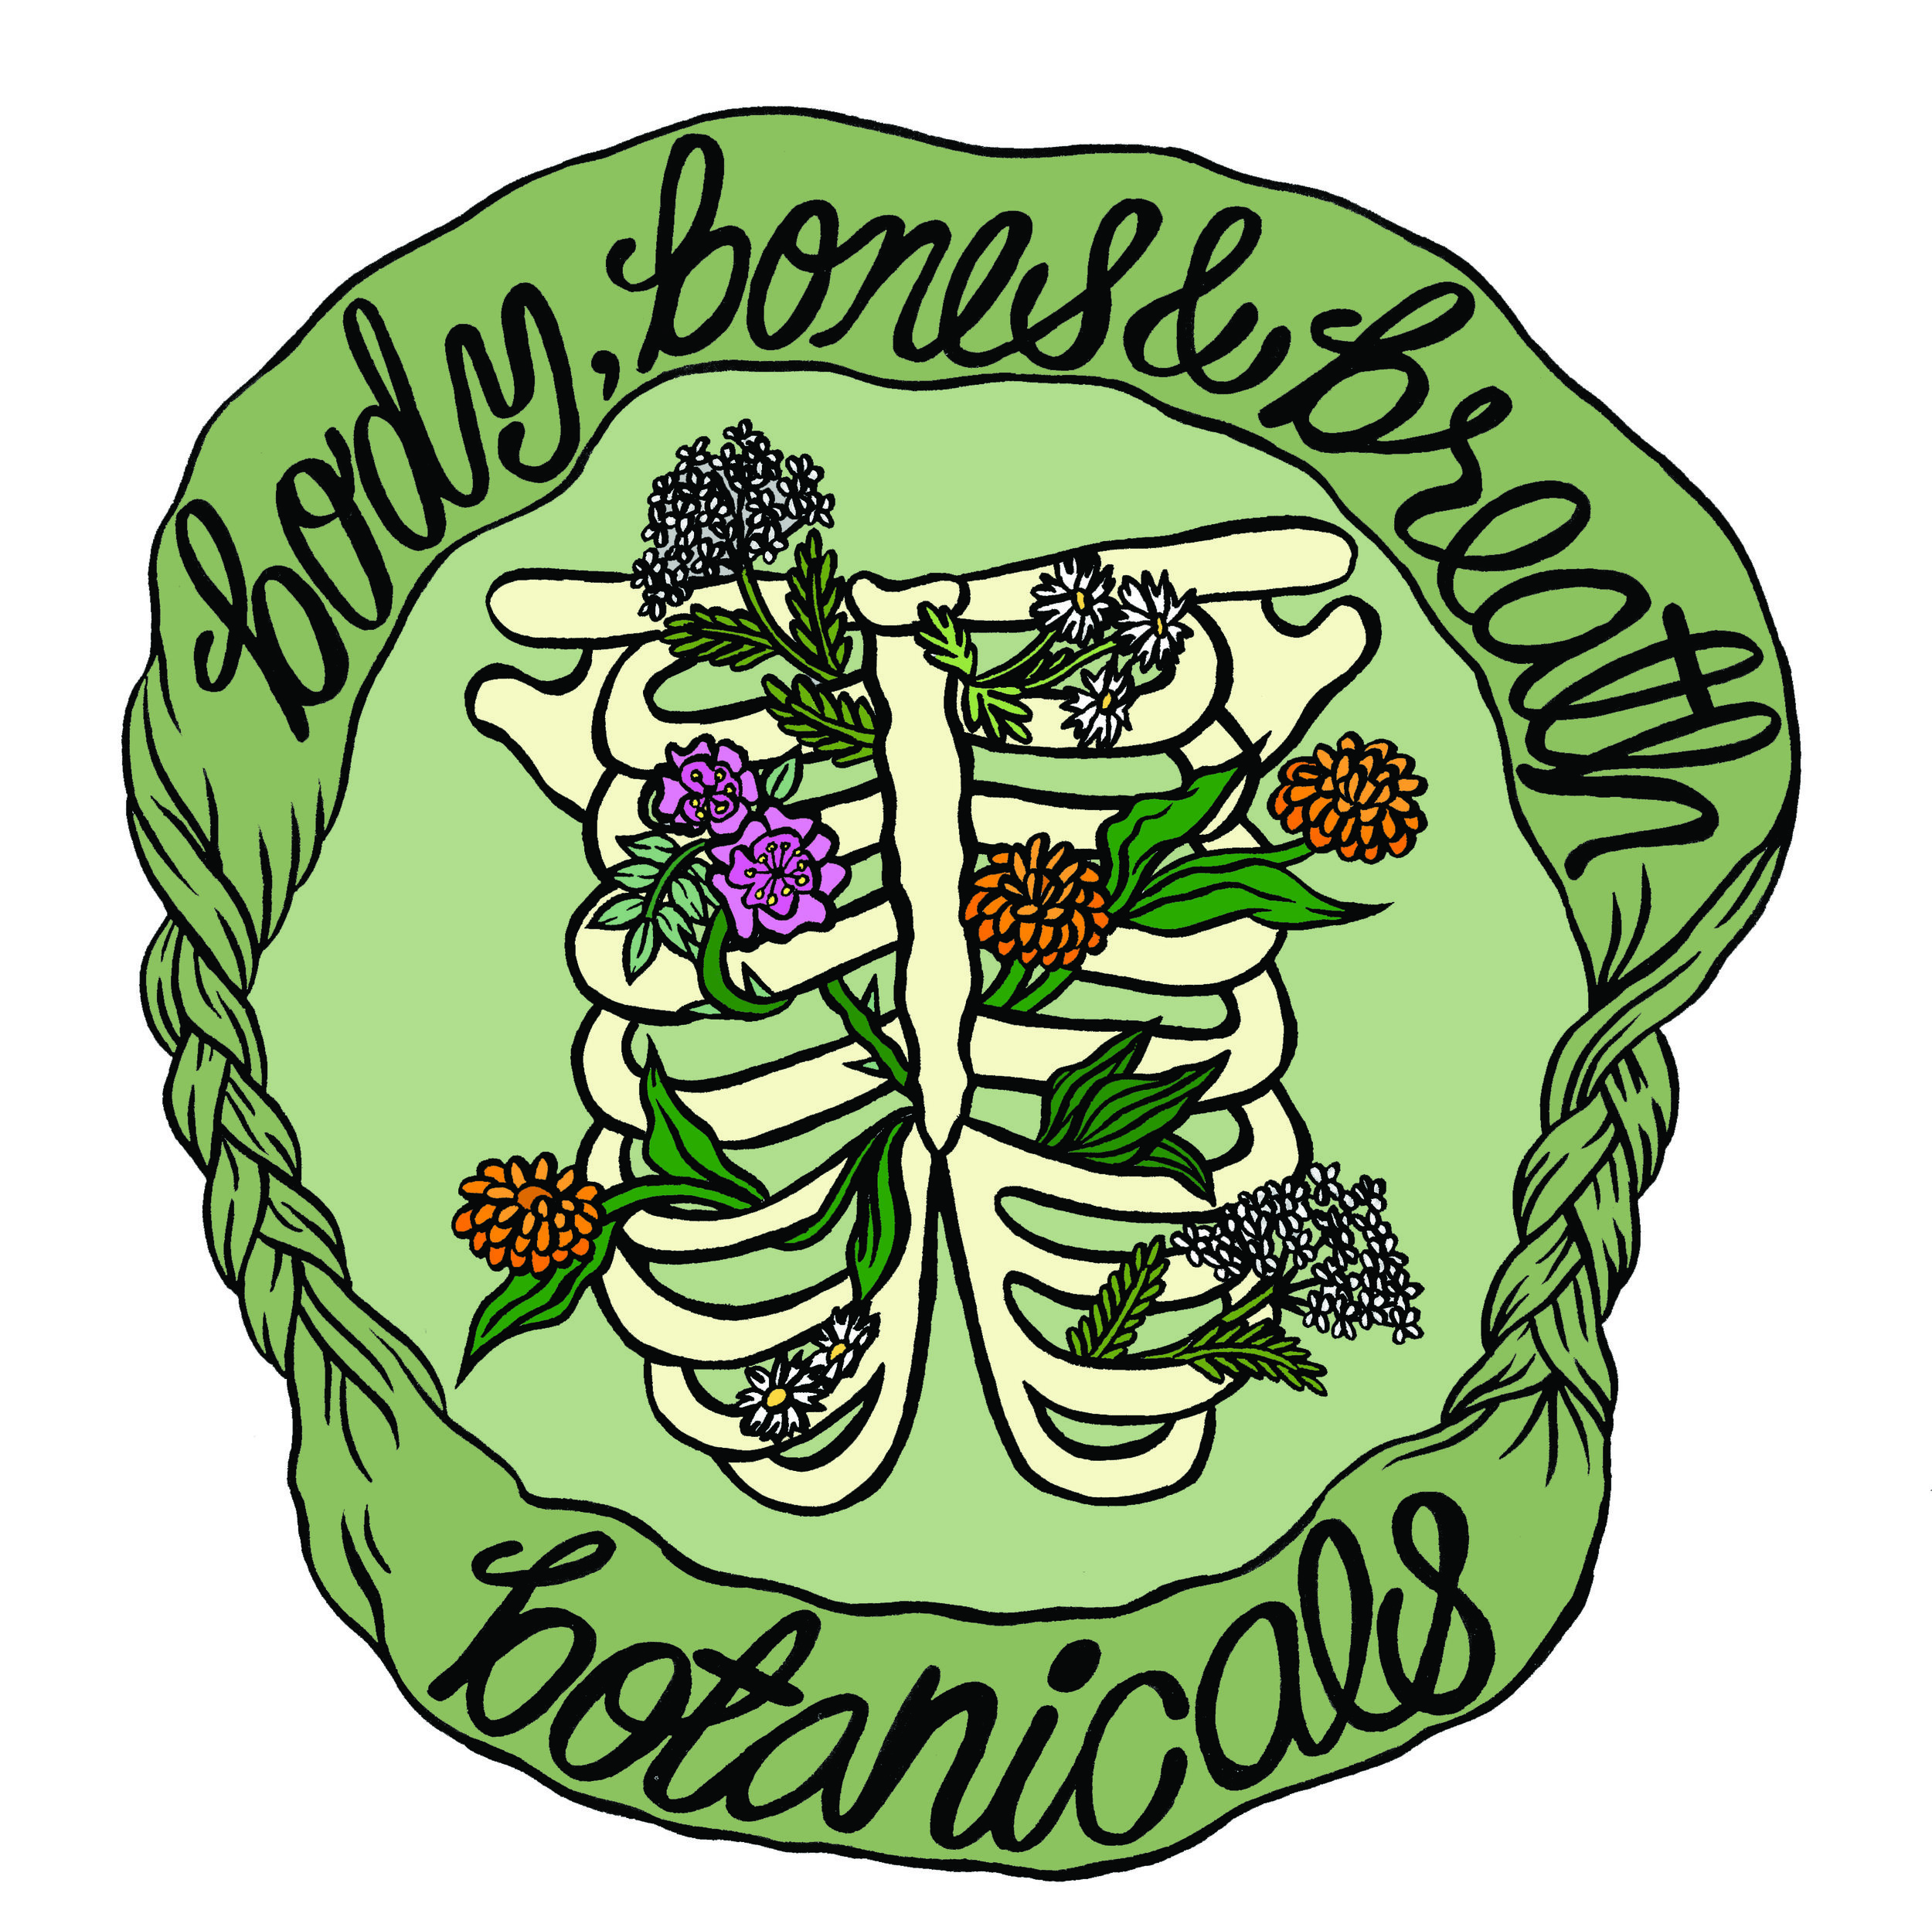 LOGO:  FOR BODY, BONES & BREATH BOTANICALS